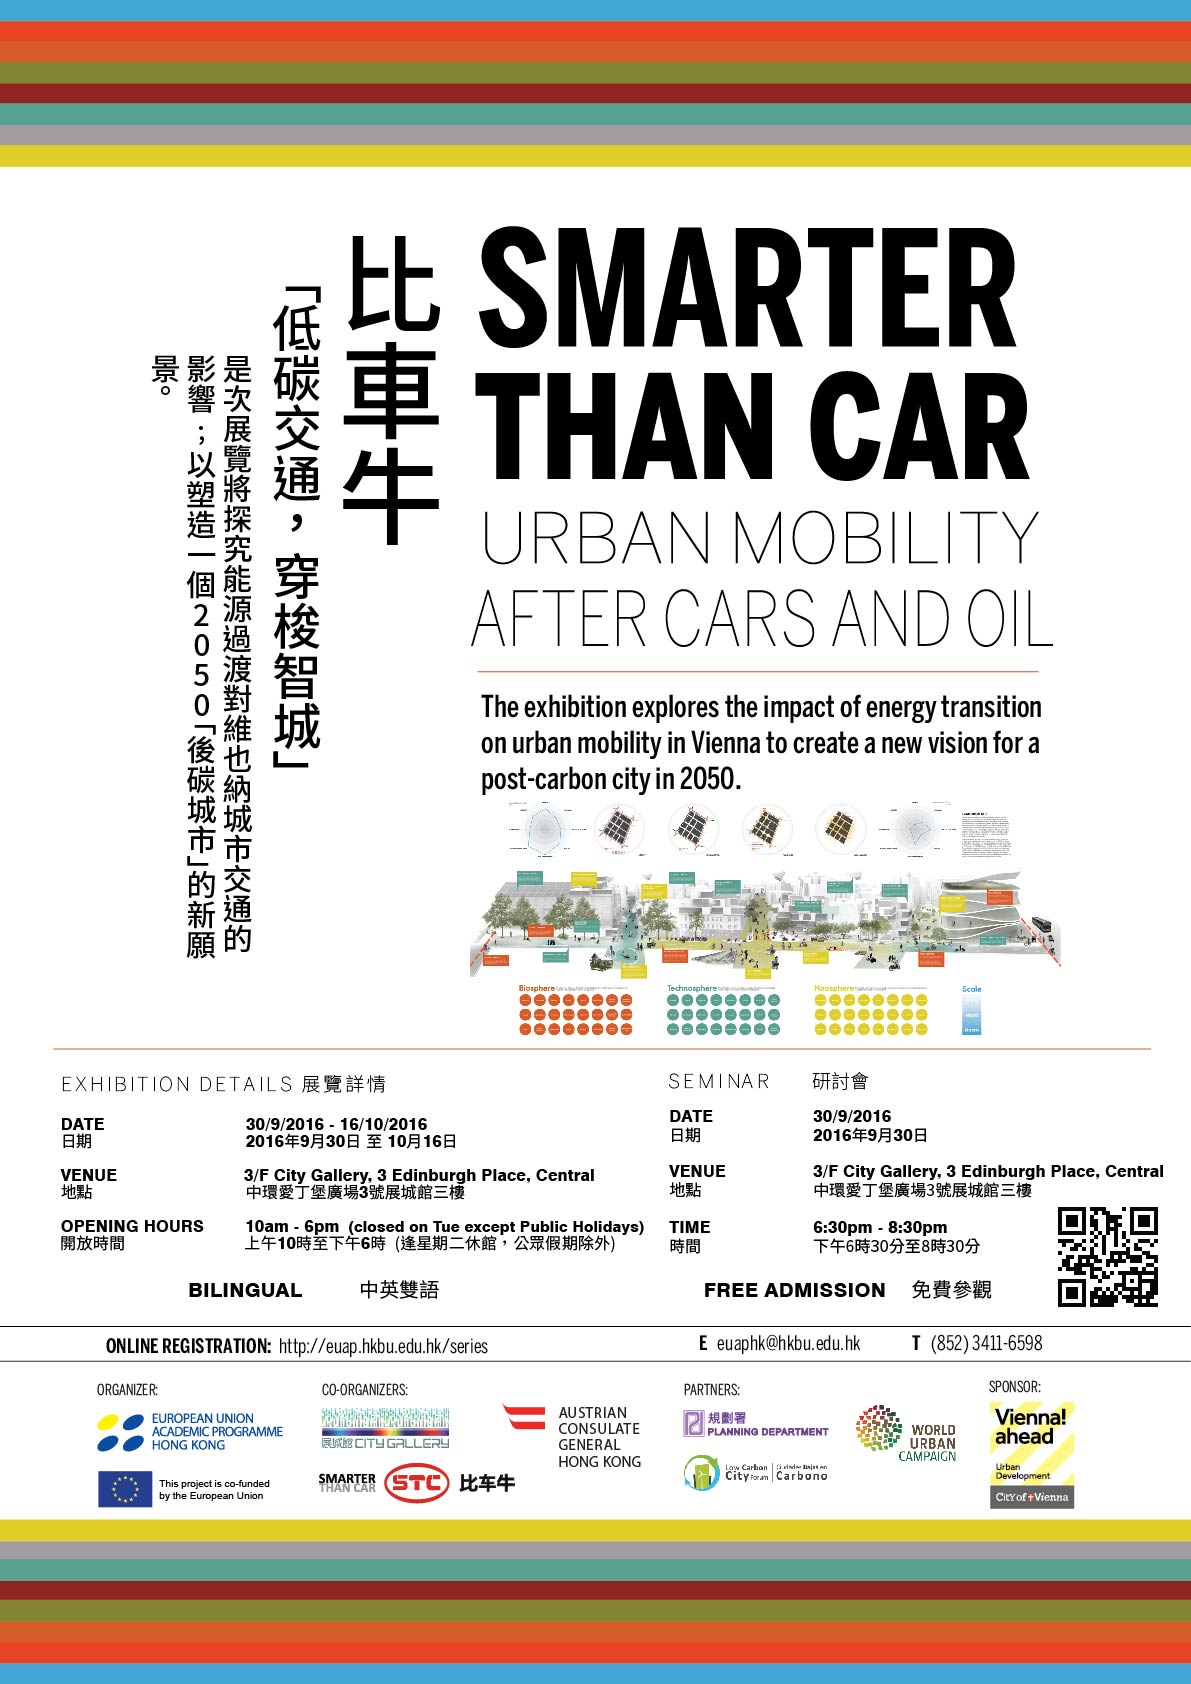 [SEMINAR 研討會] Hong Kong - Vienna Dialogue: Smarter Than Car - Urban Mobility After Cars and Oil 香港 – 維也納對話:比車牛 – 低碳交通.穿梭智城